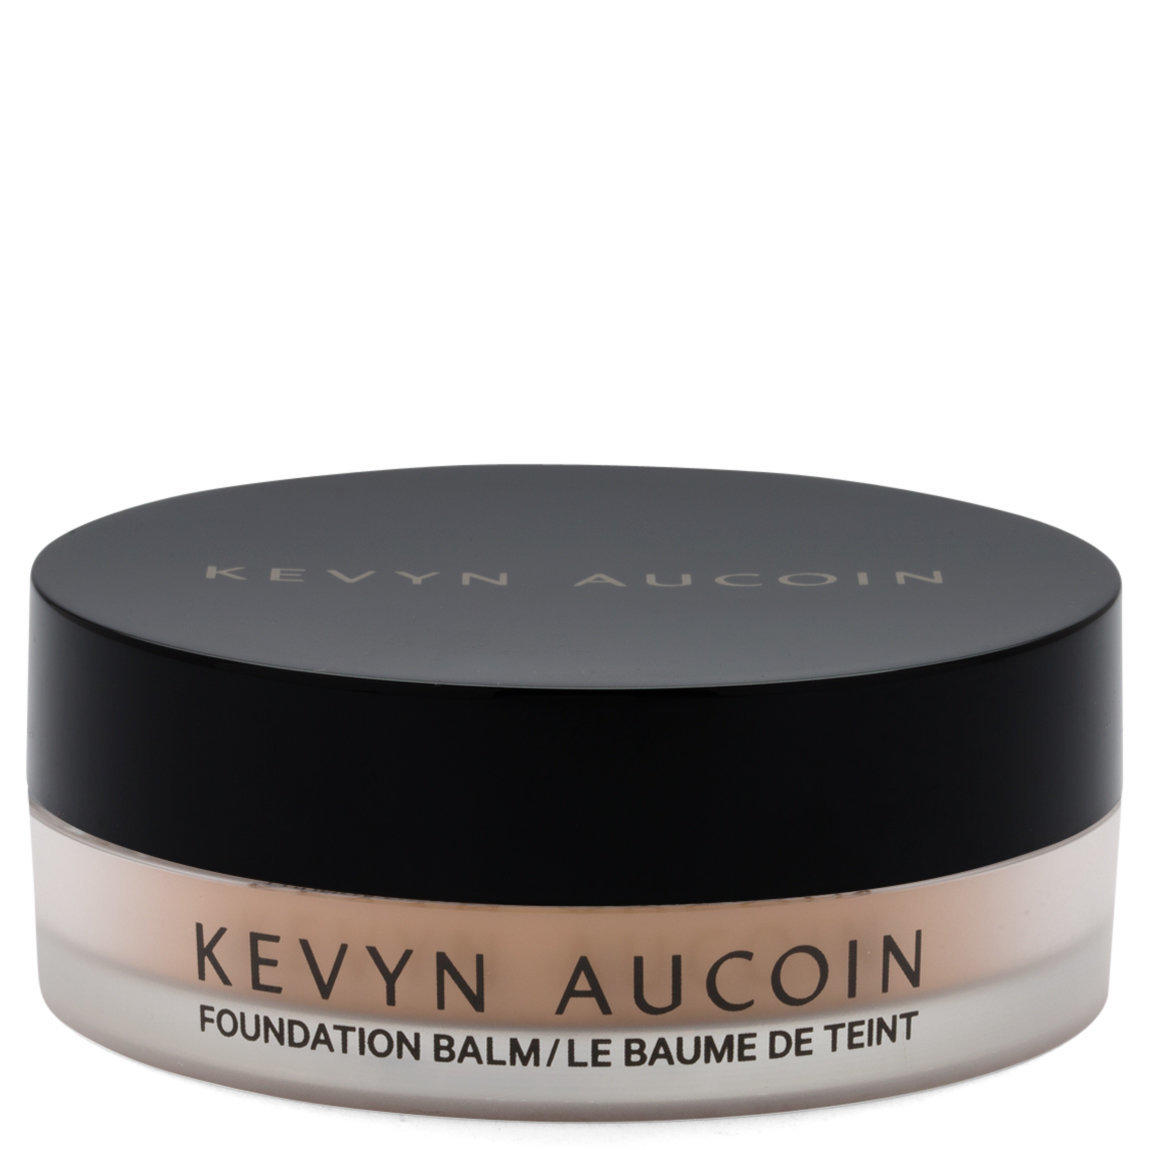 Kevyn Aucoin Foundation Balm Light FB4.5